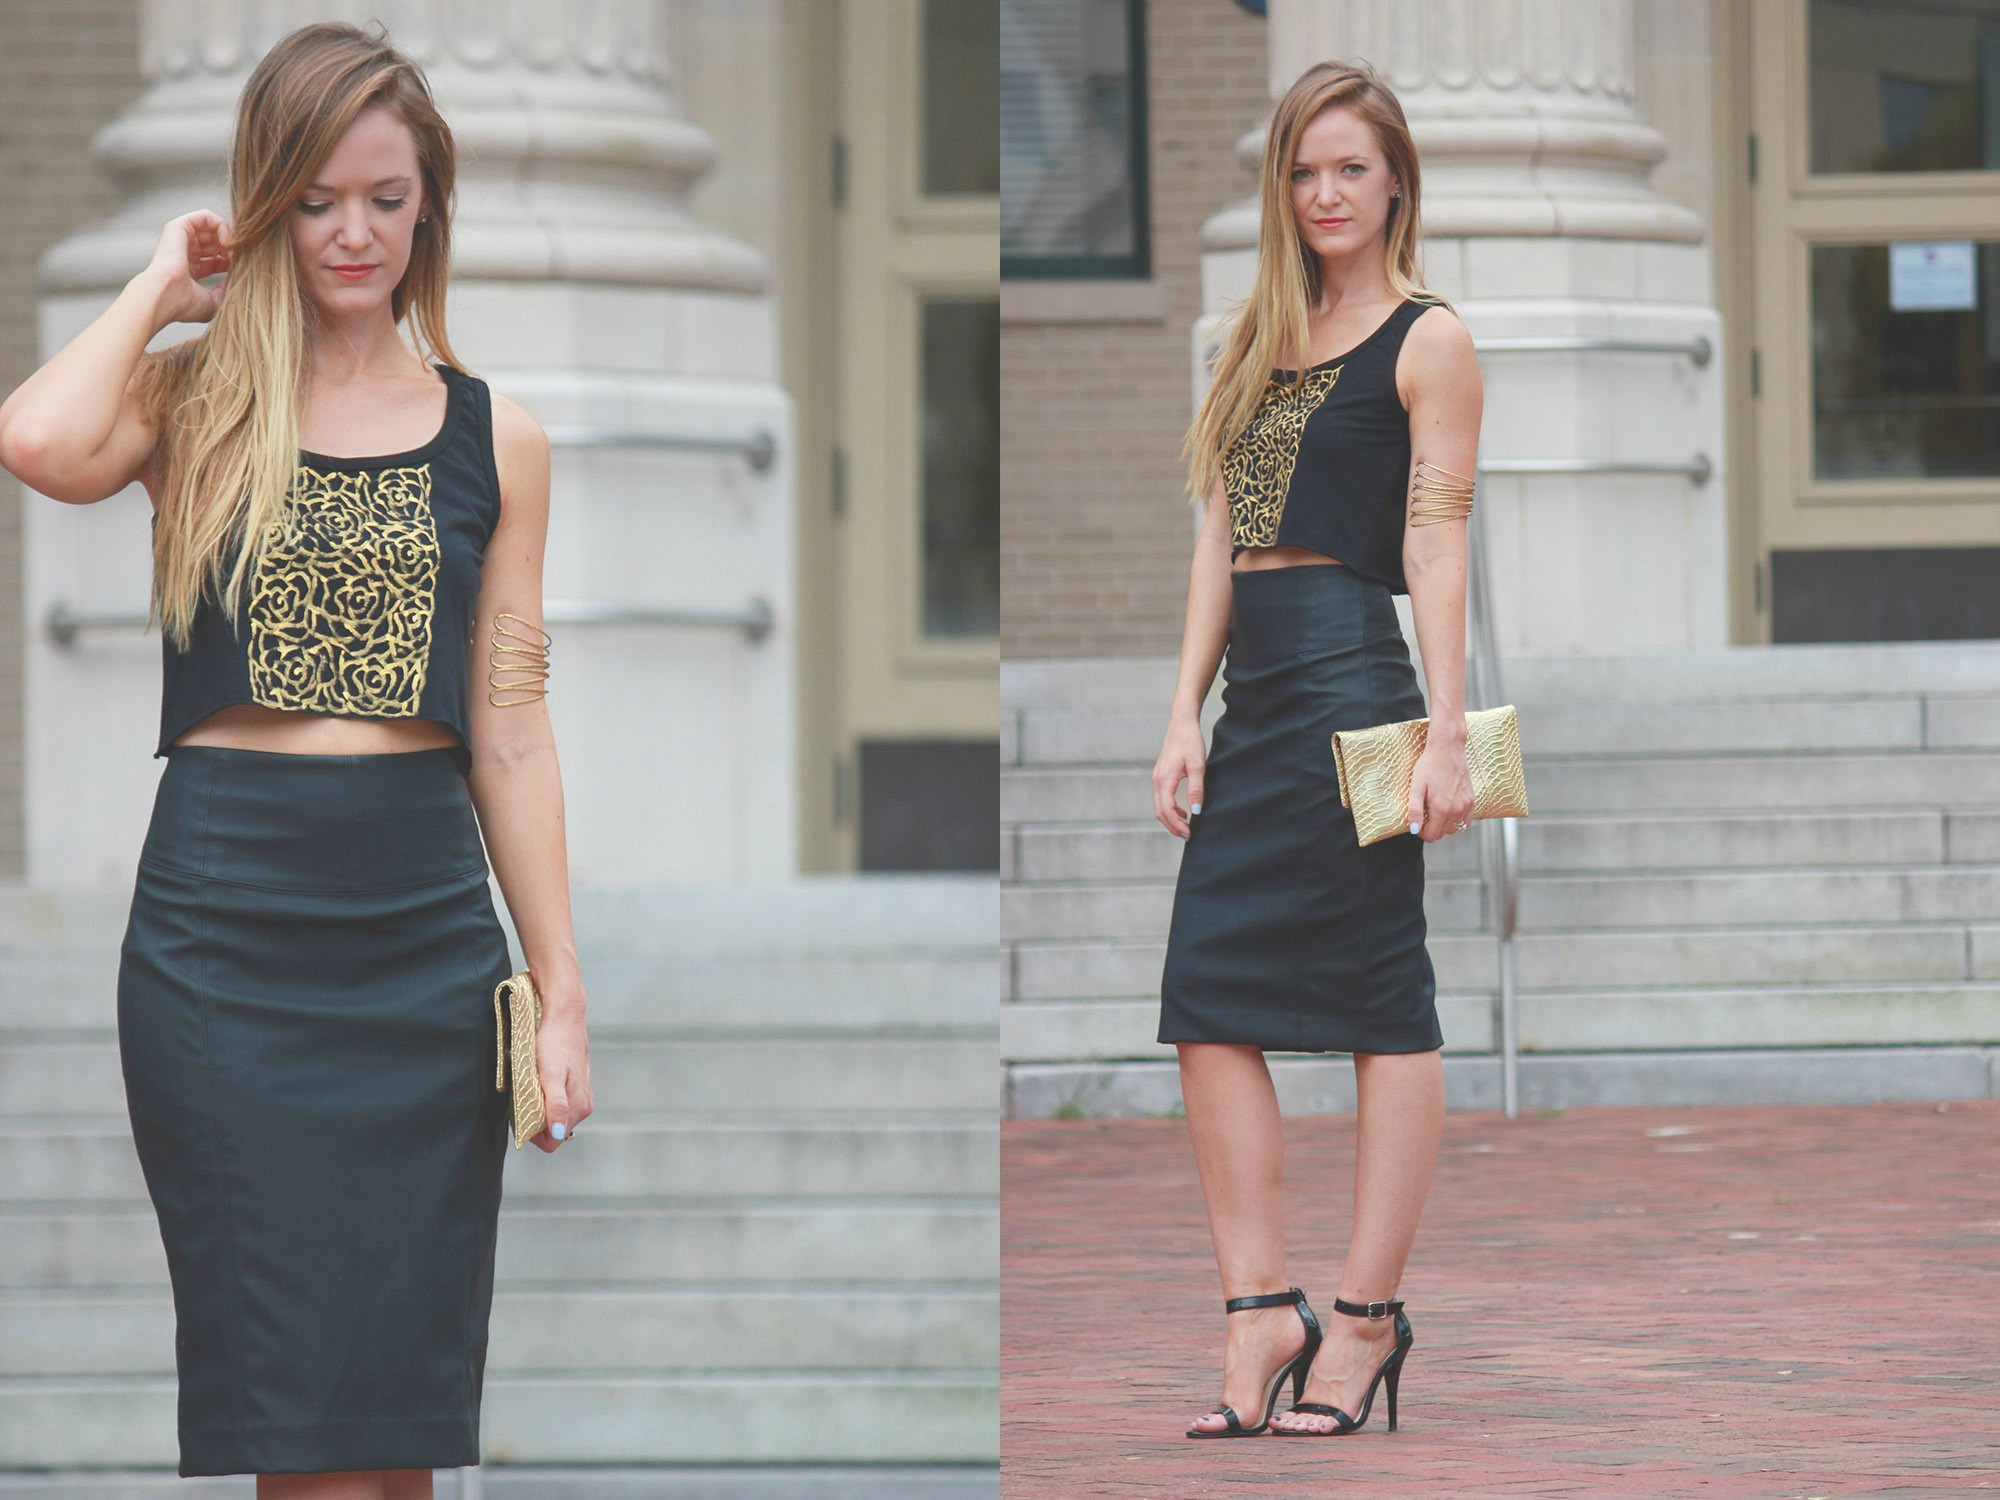 Wear the paint, black crop top, express skirt, leather pencil skirt, free people arm cuff, free people armband, going out outfit, date night outfit